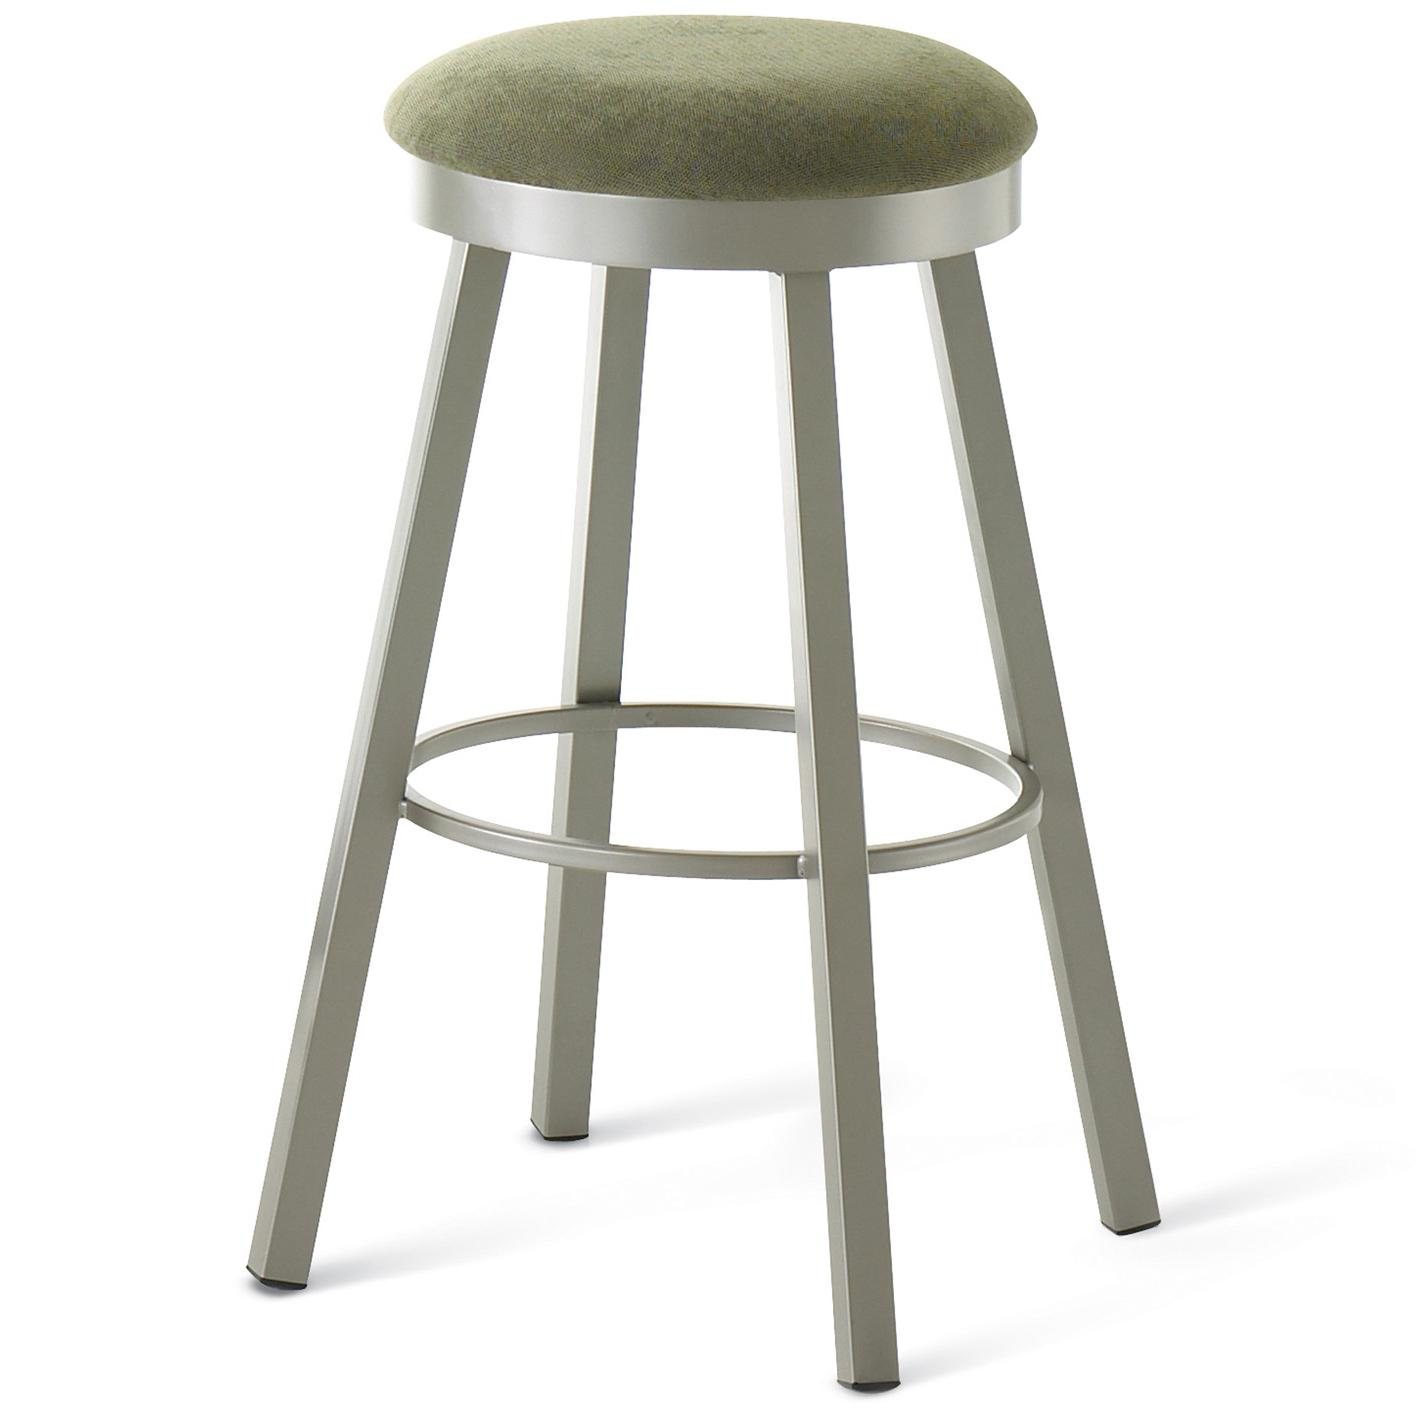 "Urban 26"" Counter Height Connor Swivel Stool by Amisco at Dinette Depot"